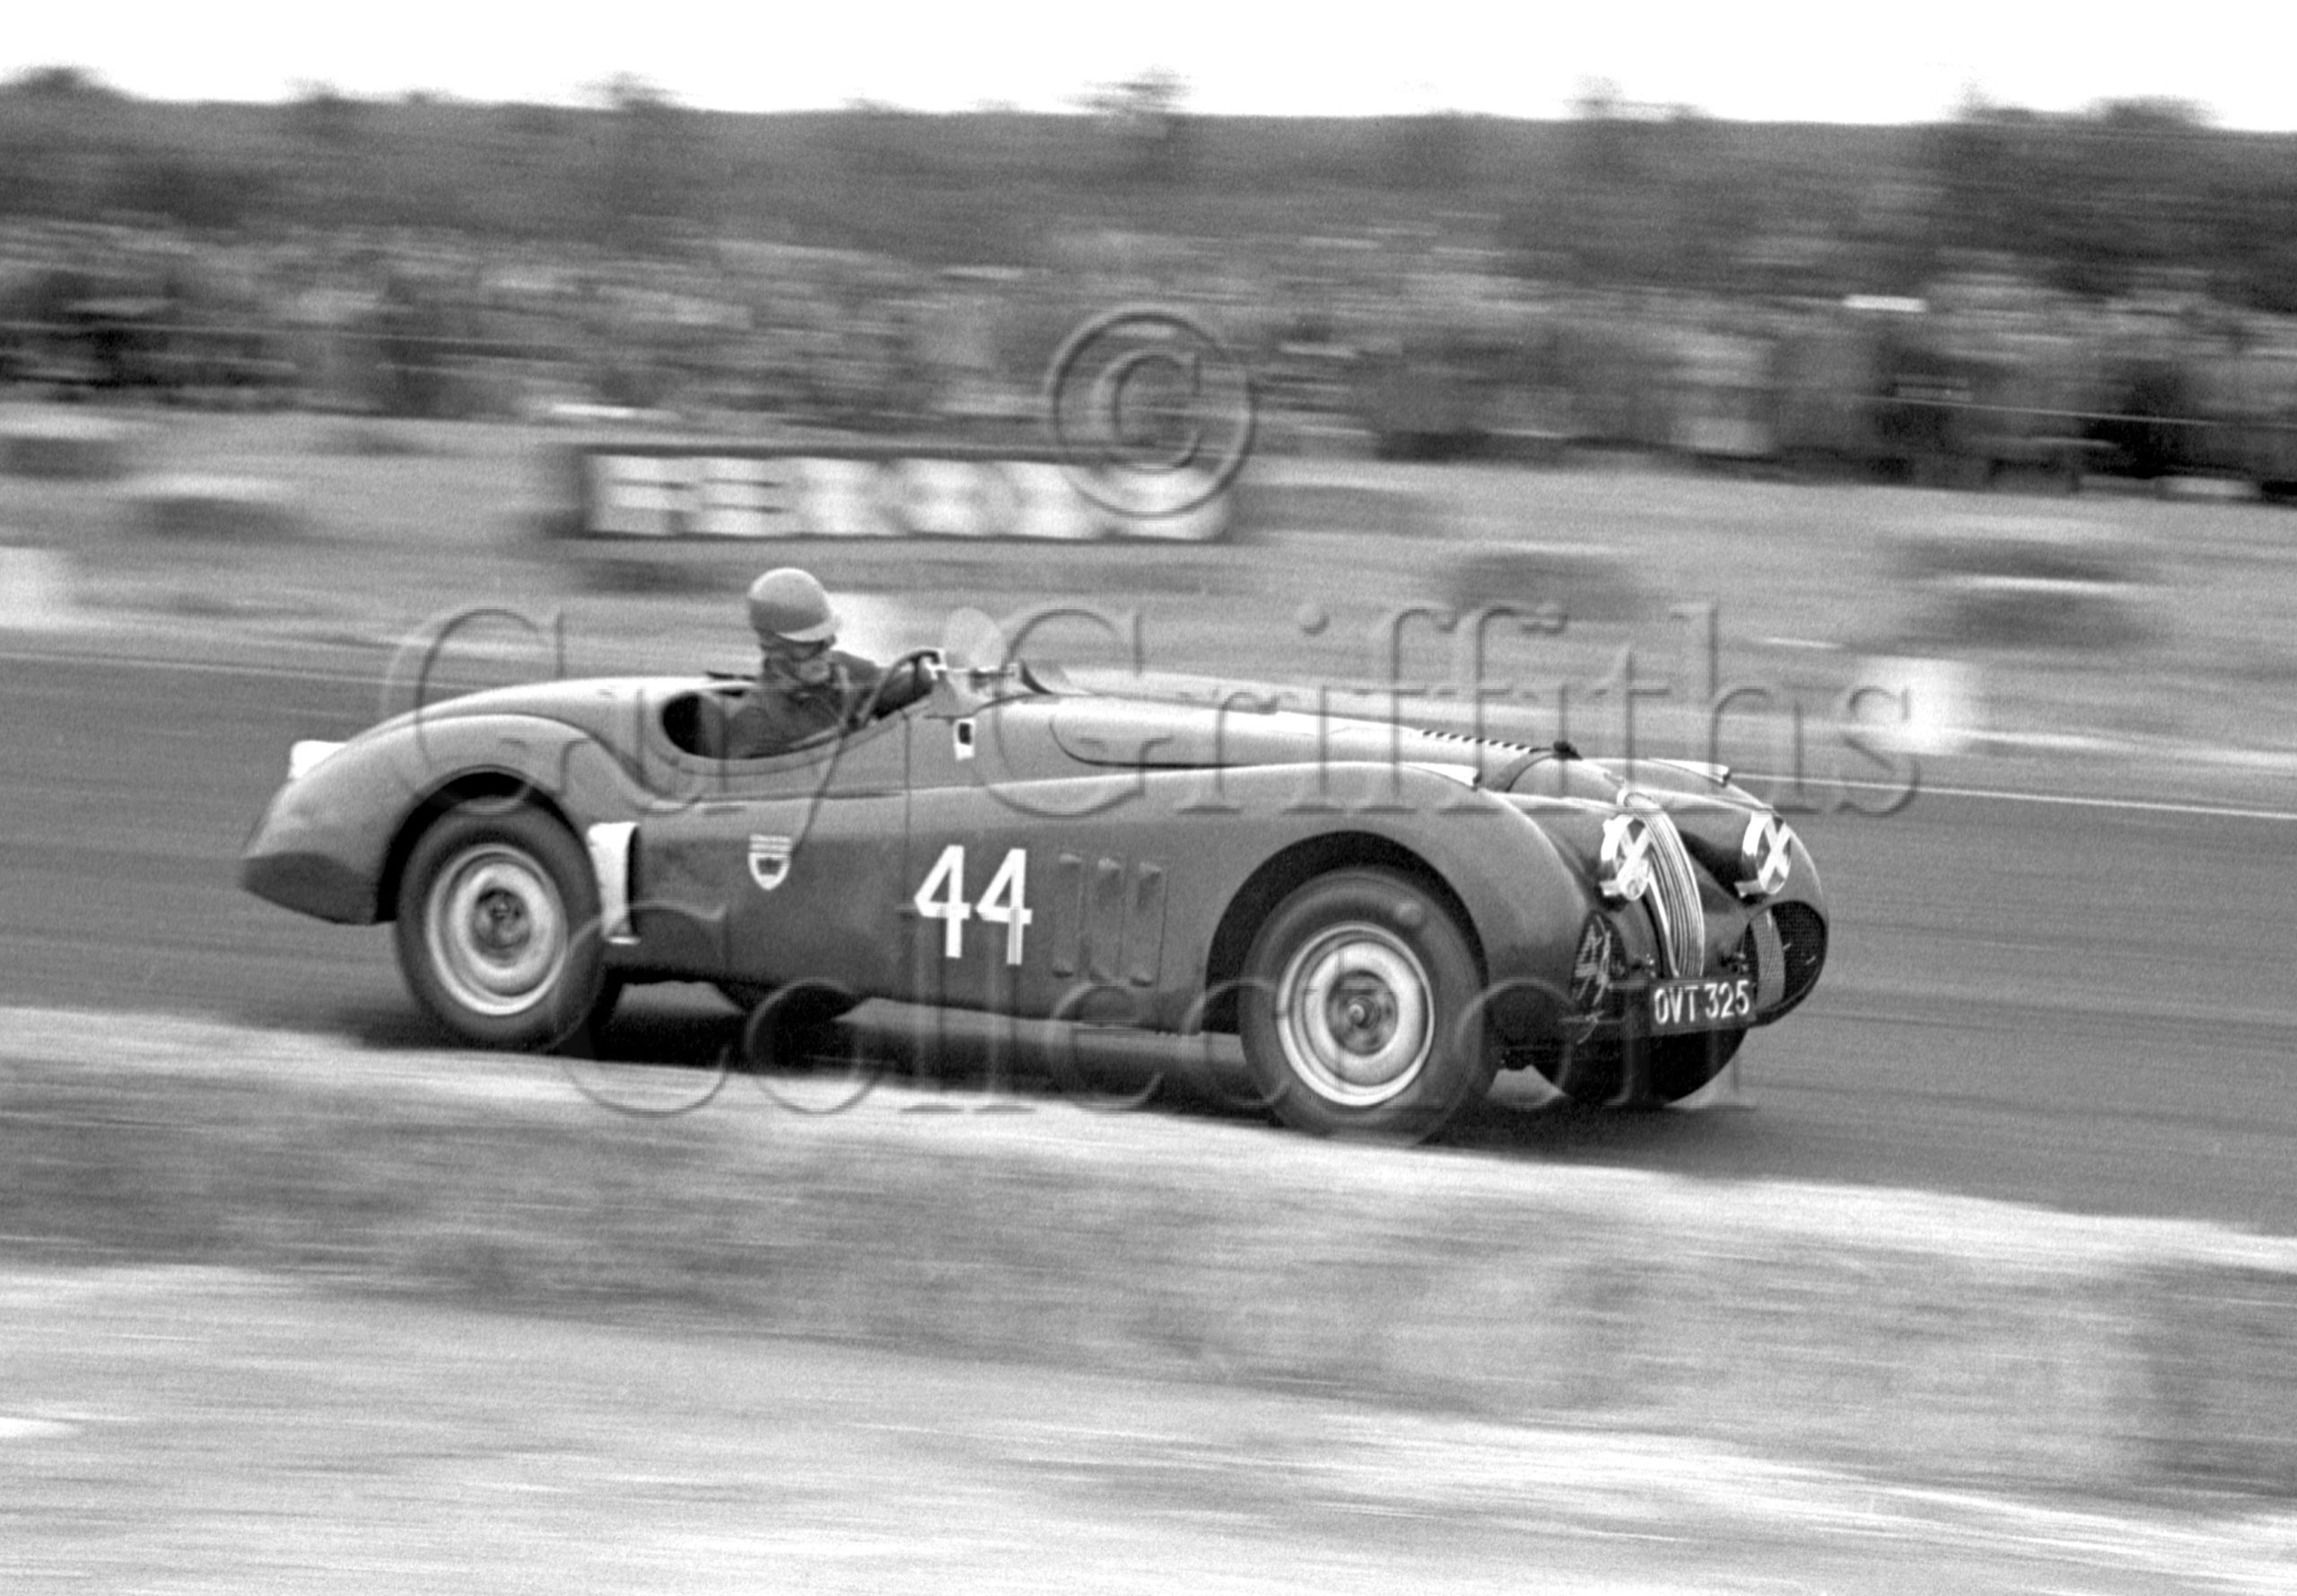 59-413–J-Swift–Jaguar-XK-120-OVT-325–Boreham–02-08-1952.jpg - Guy Griffiths Collection